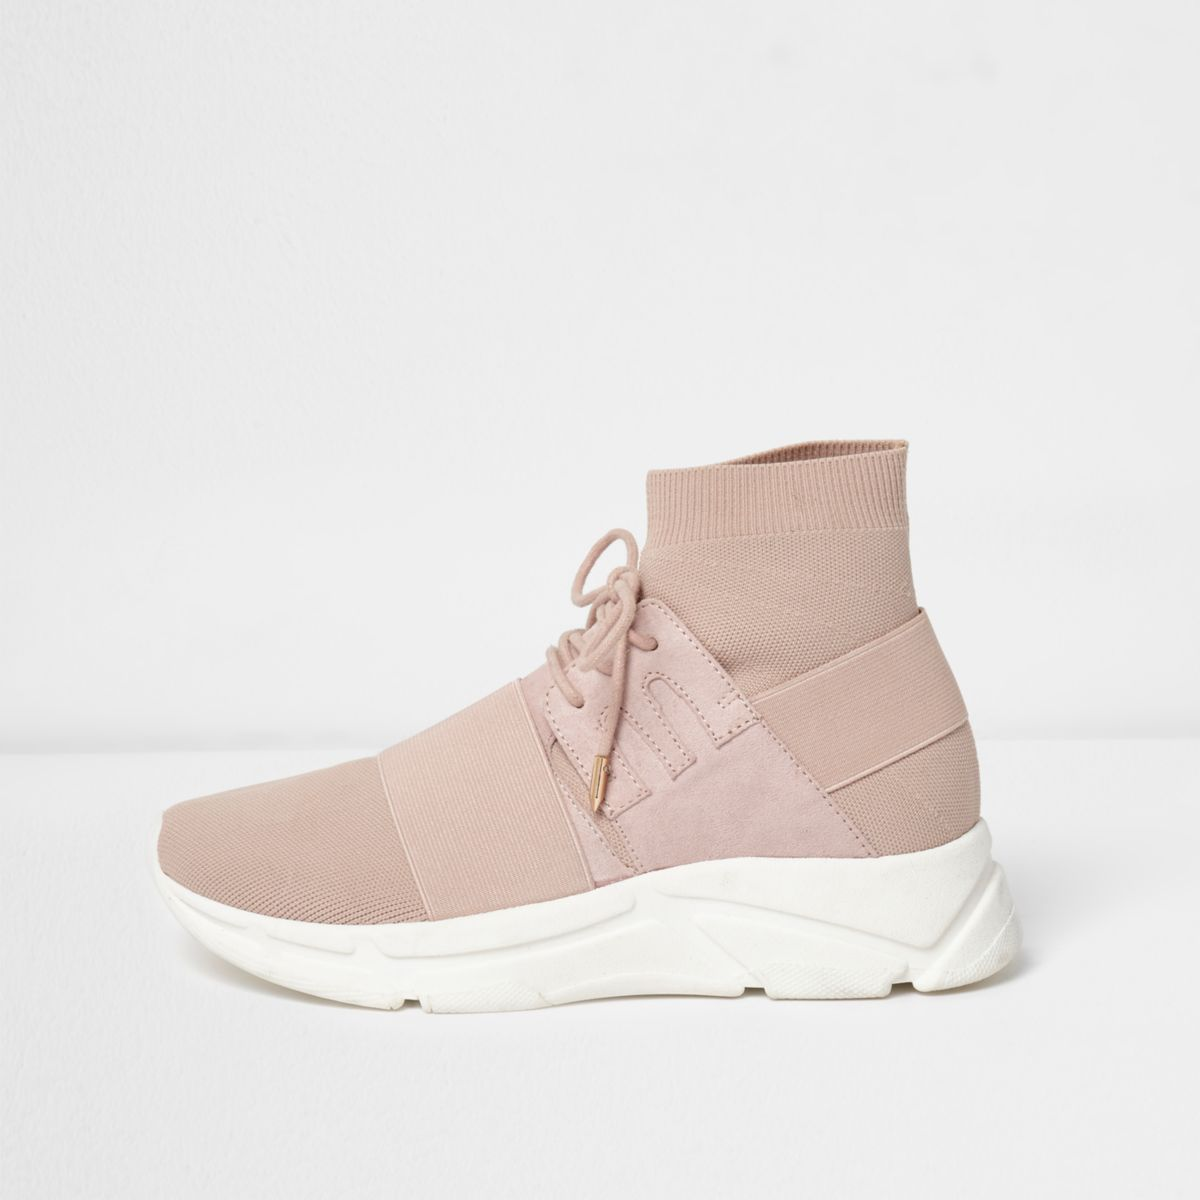 River Island Womens knitted runner sneakers YDDI3rs1